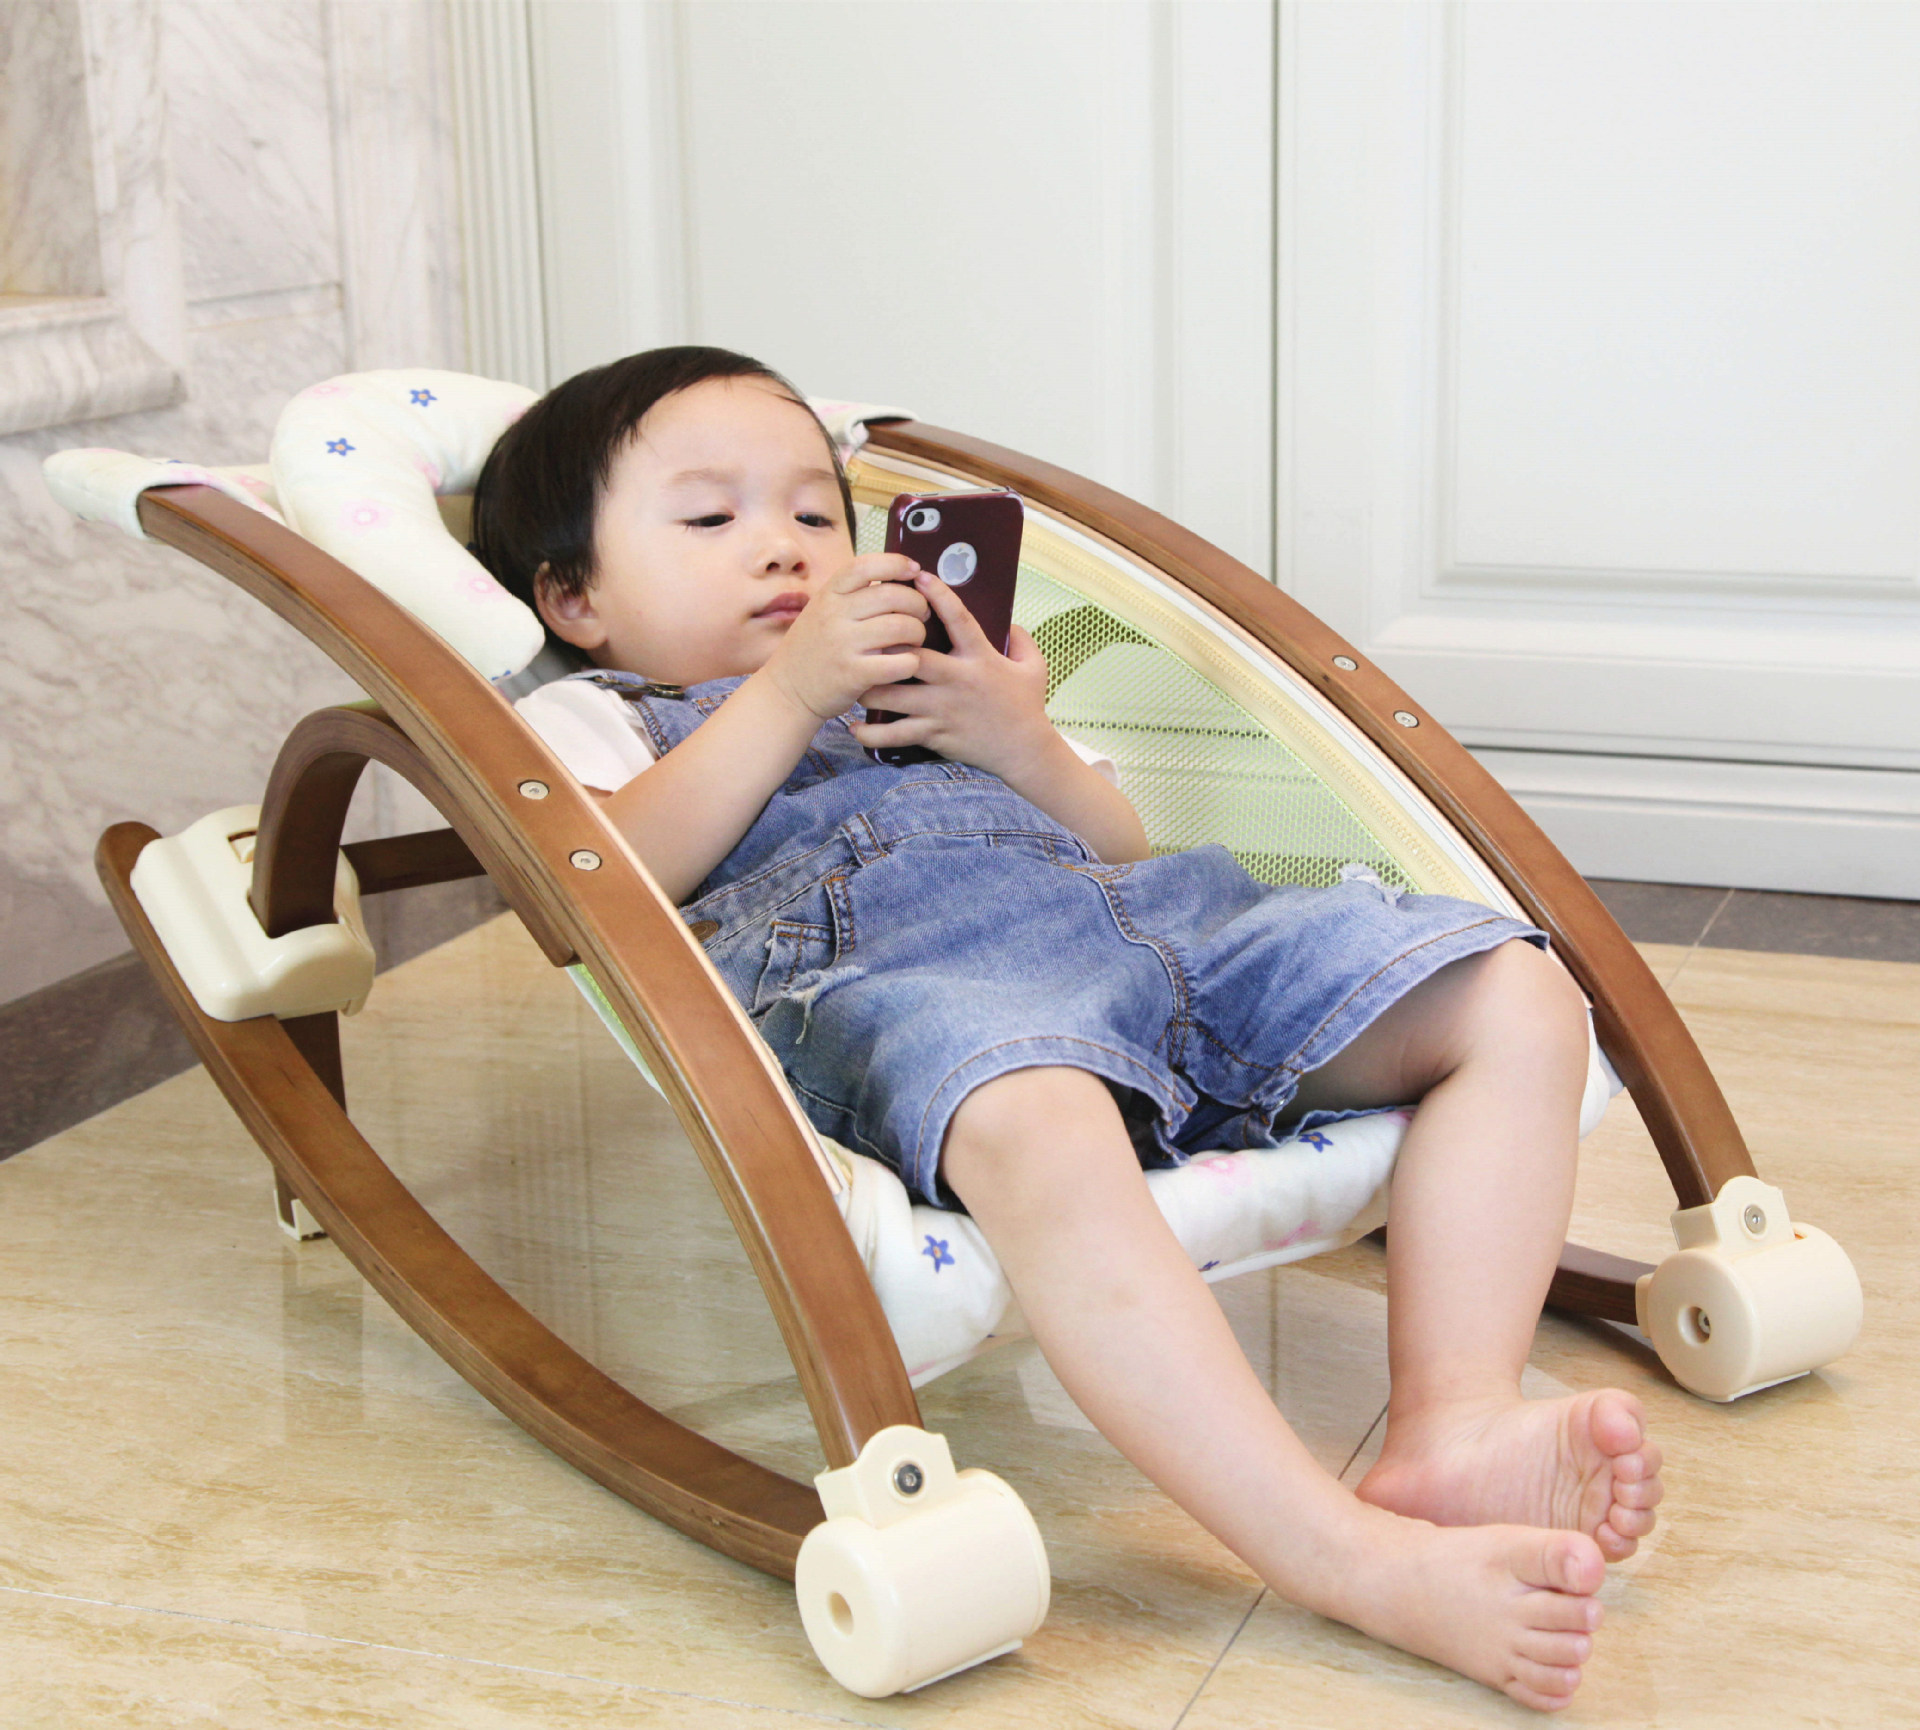 Solid Wood Baby Crib Baby Bed  Baby Sleeping Basket Baby Products Wholesale Manufacturers promotion 6pcs baby bedding set cot crib bedding set baby bed baby cot sets include 4bumpers sheet pillow